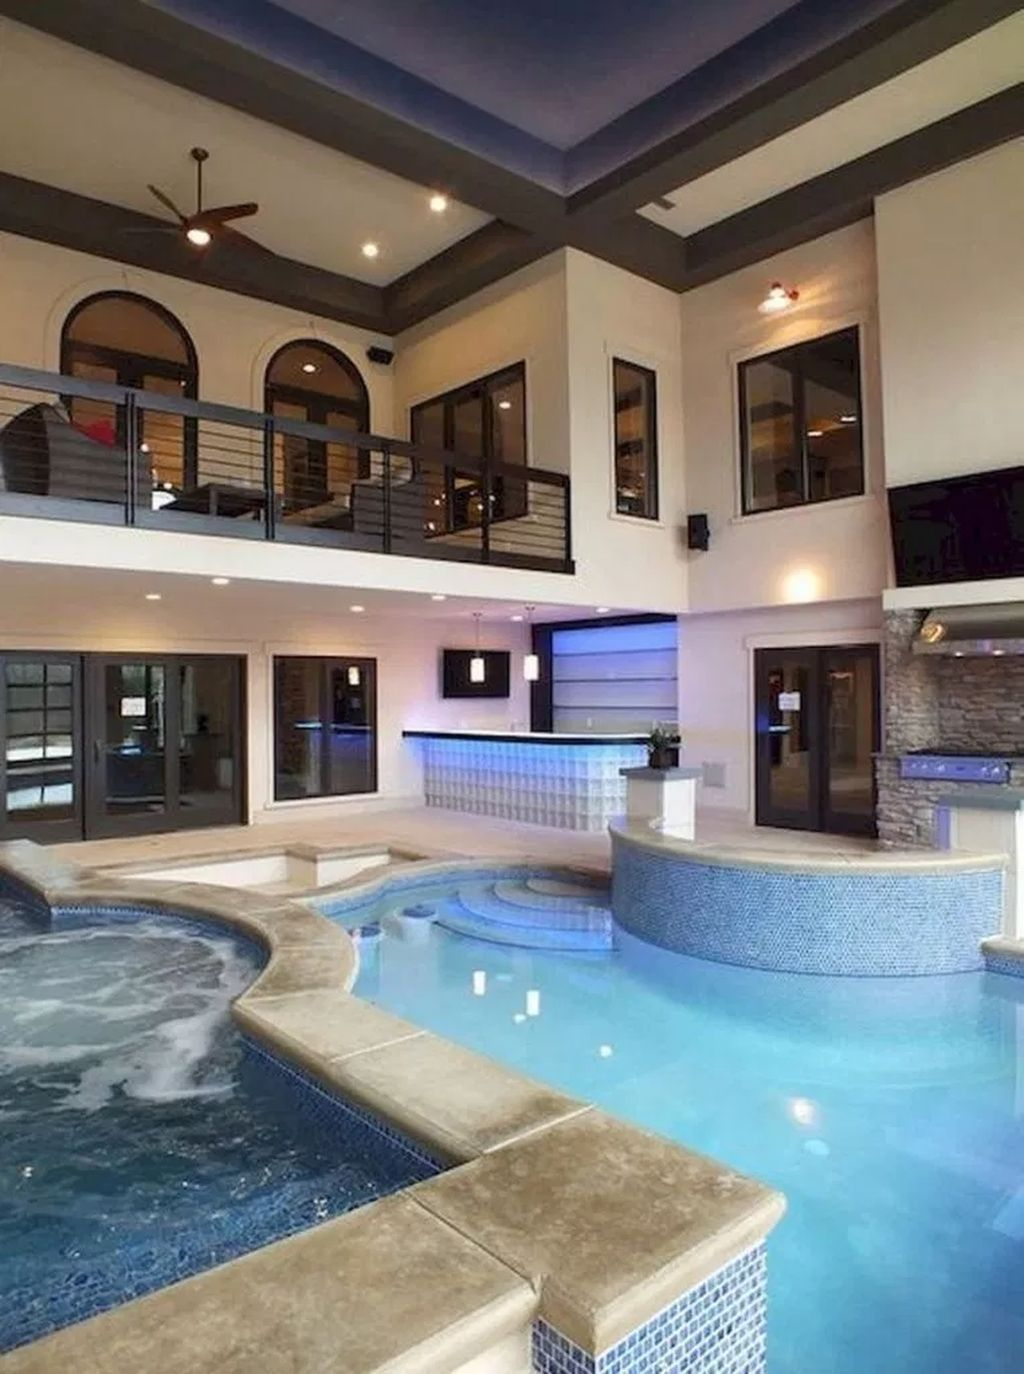 30 Catchy Small Indoor Swimming Pool Design Ideas Indoor Pool Design Indoor Swimming Pool Design Luxury Swimming Pools